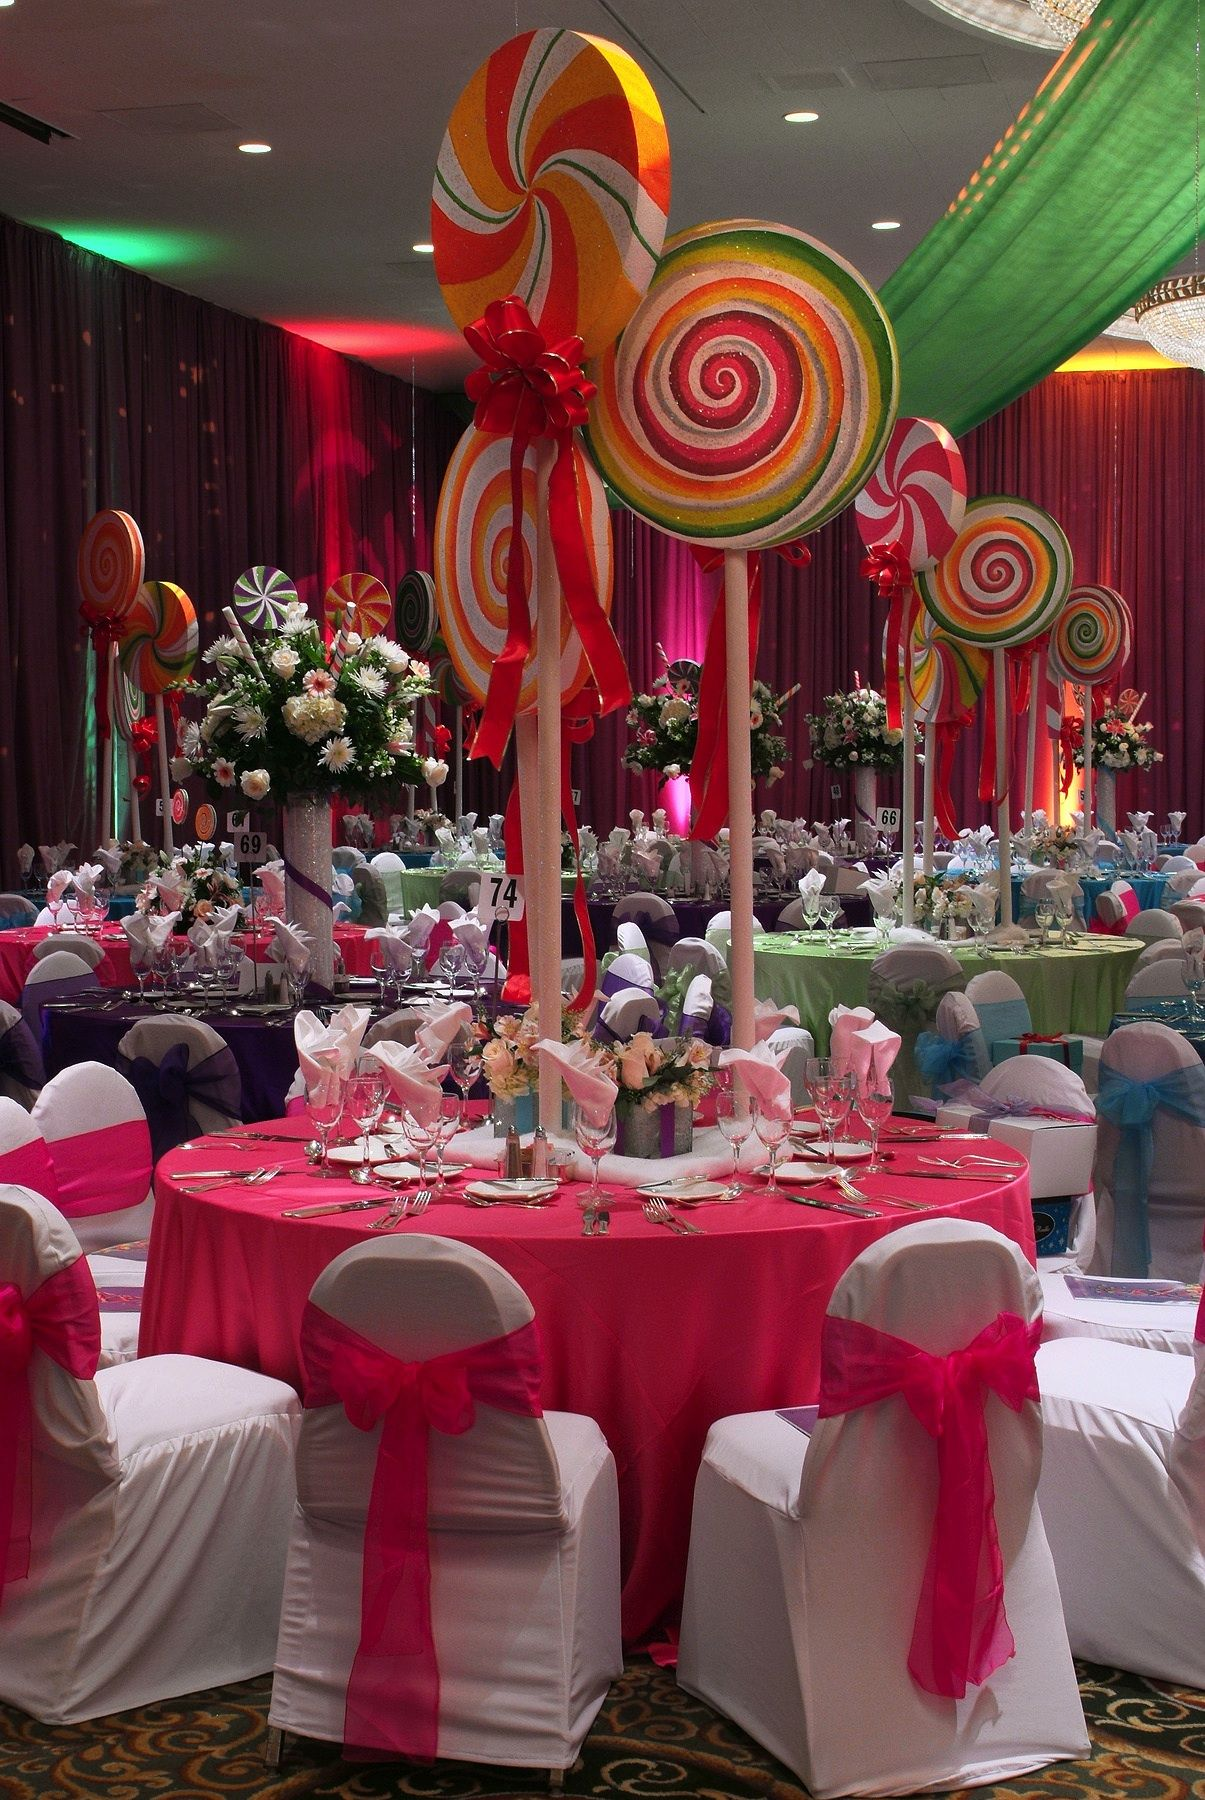 Spindle Top Gala With Imagine That Houston Candy Land Theme